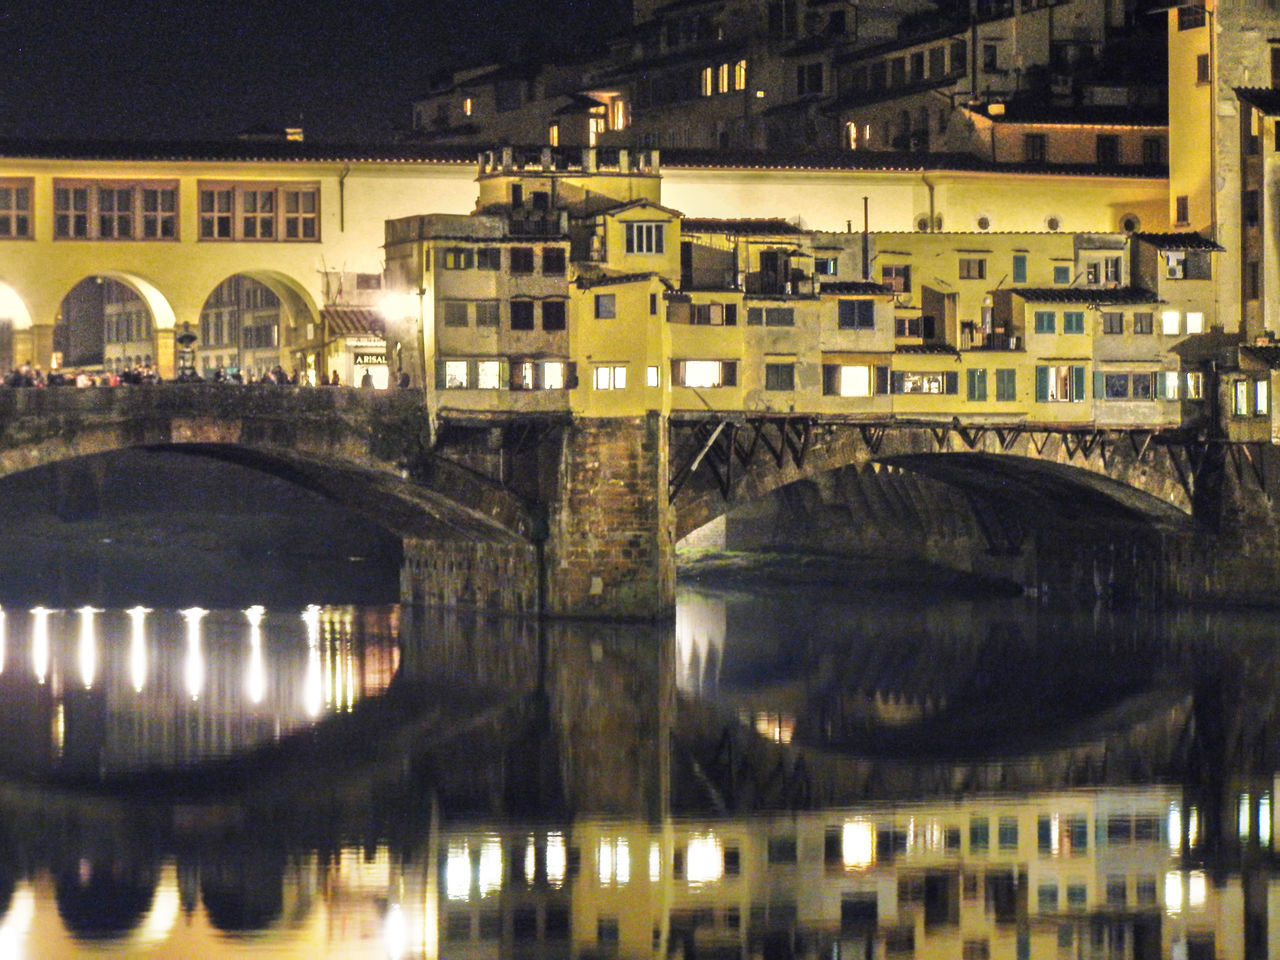 ARCH BRIDGE OVER RIVER IN CITY AT NIGHT